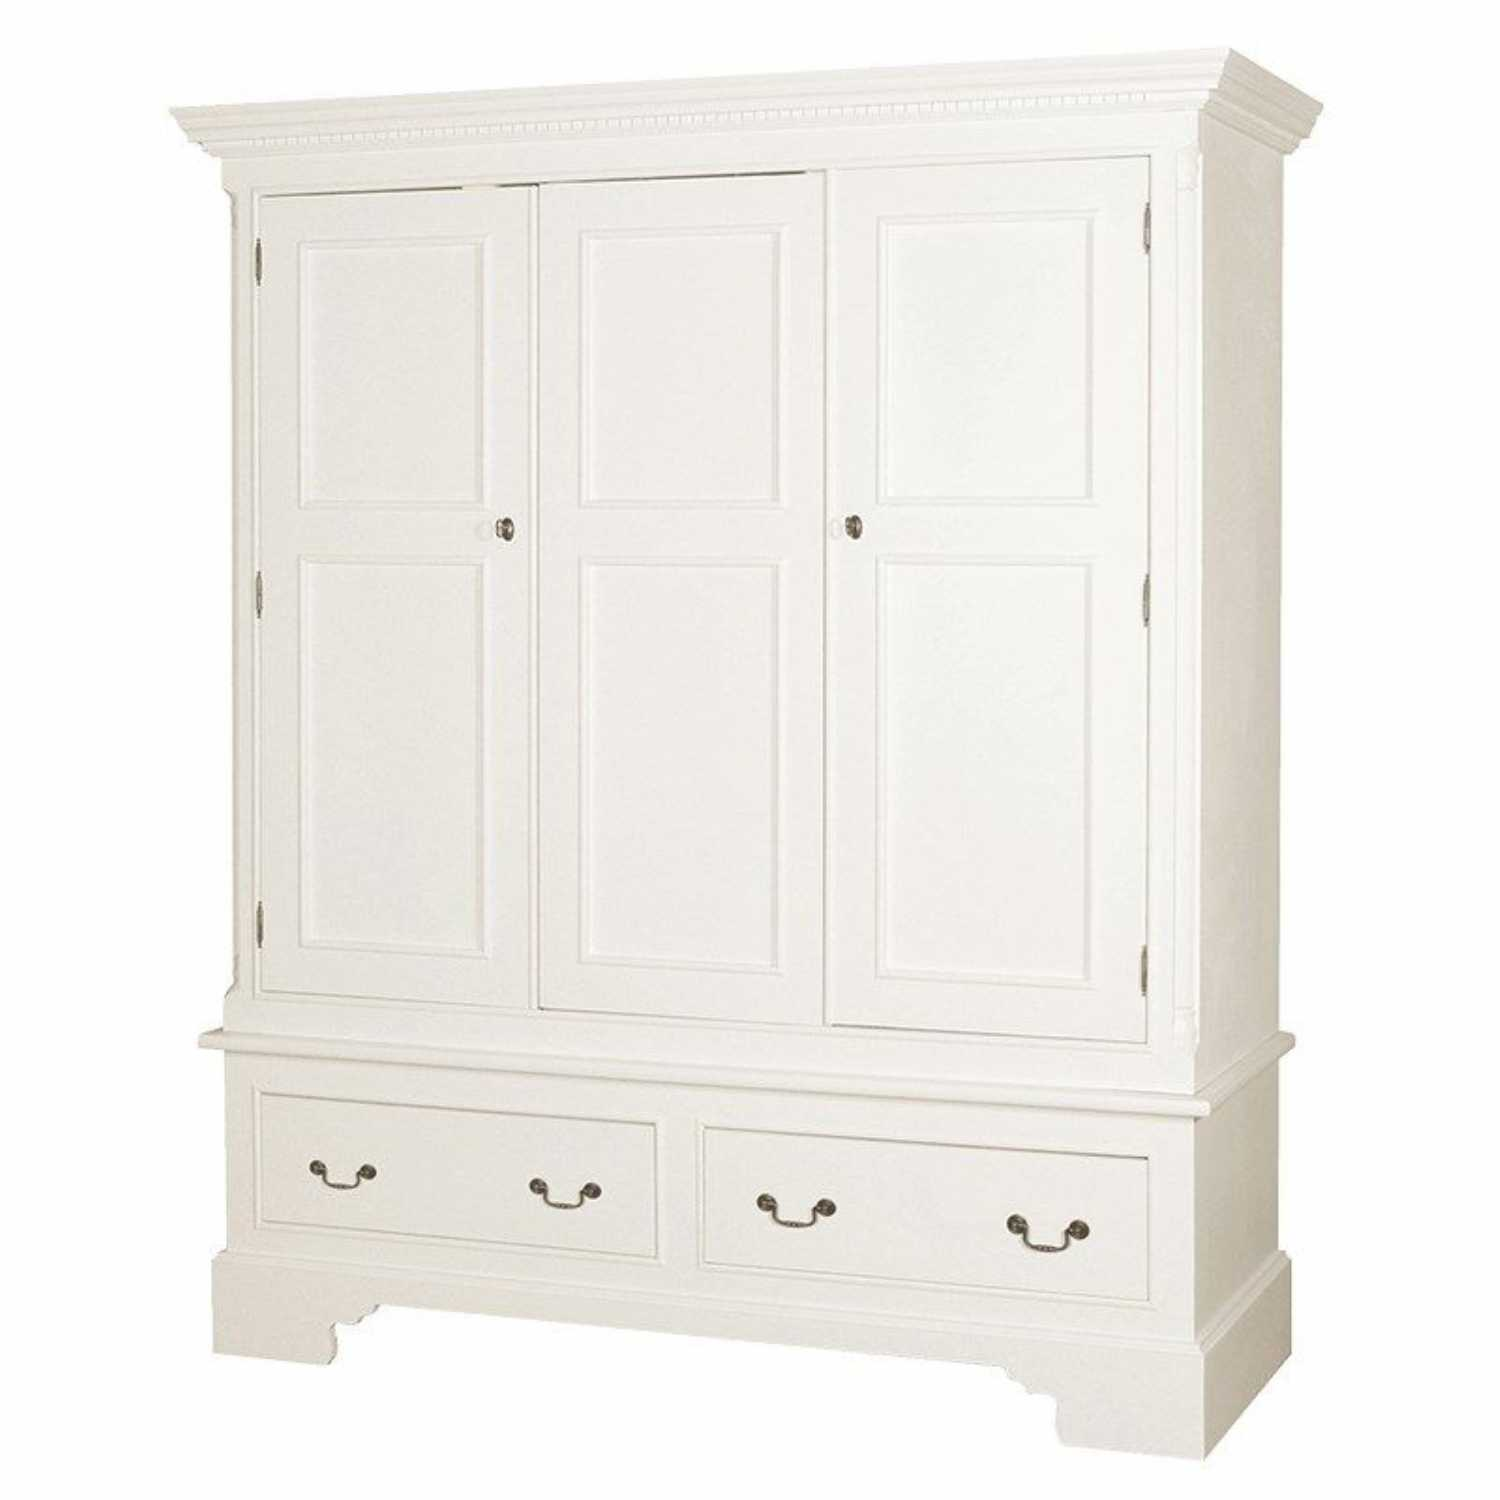 shabby chic wardrobe georgian shabby chic white painted triple 3 door 2 drawer wardrobe BQZDZYL